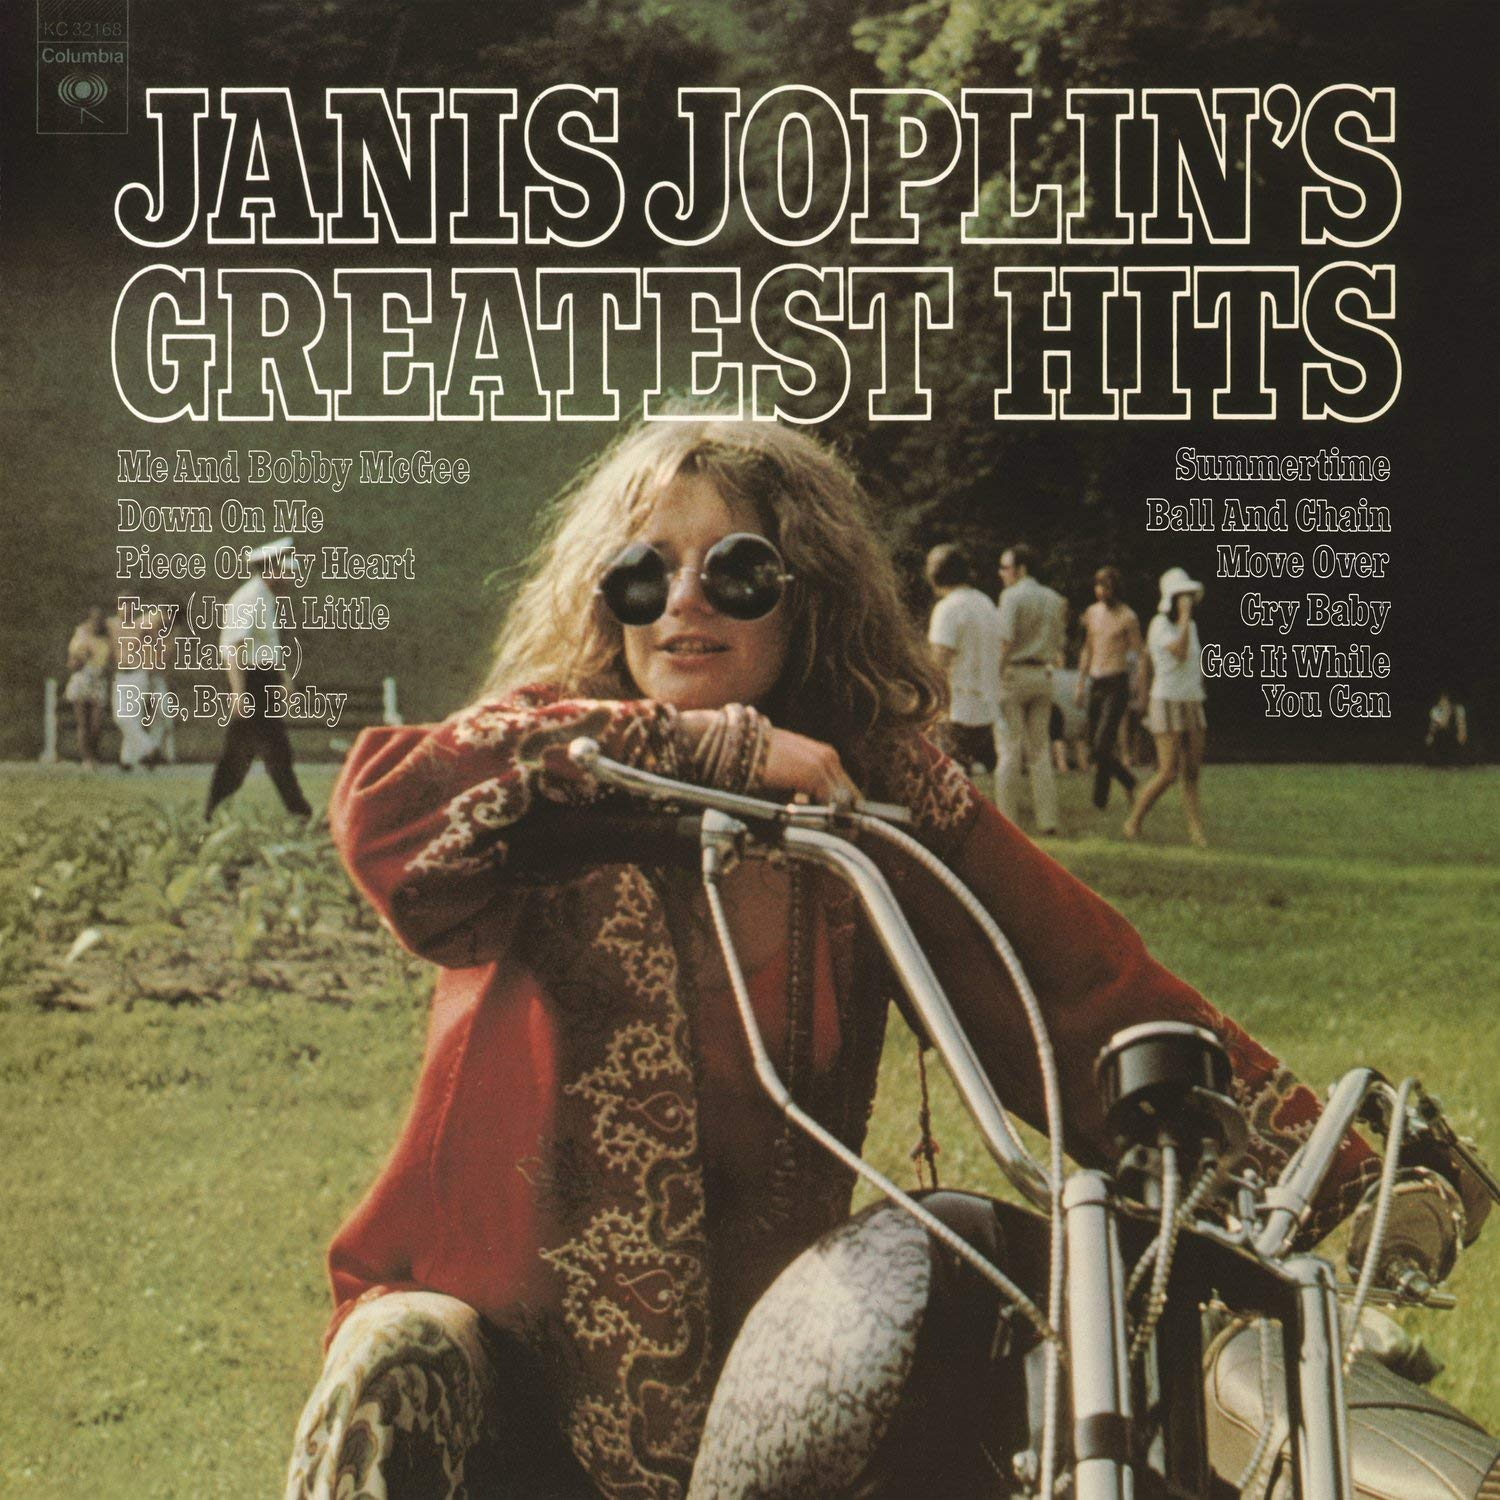 JANIS JOPLIN'S GREATEST HITS (VINYL) - Vinyl Sound